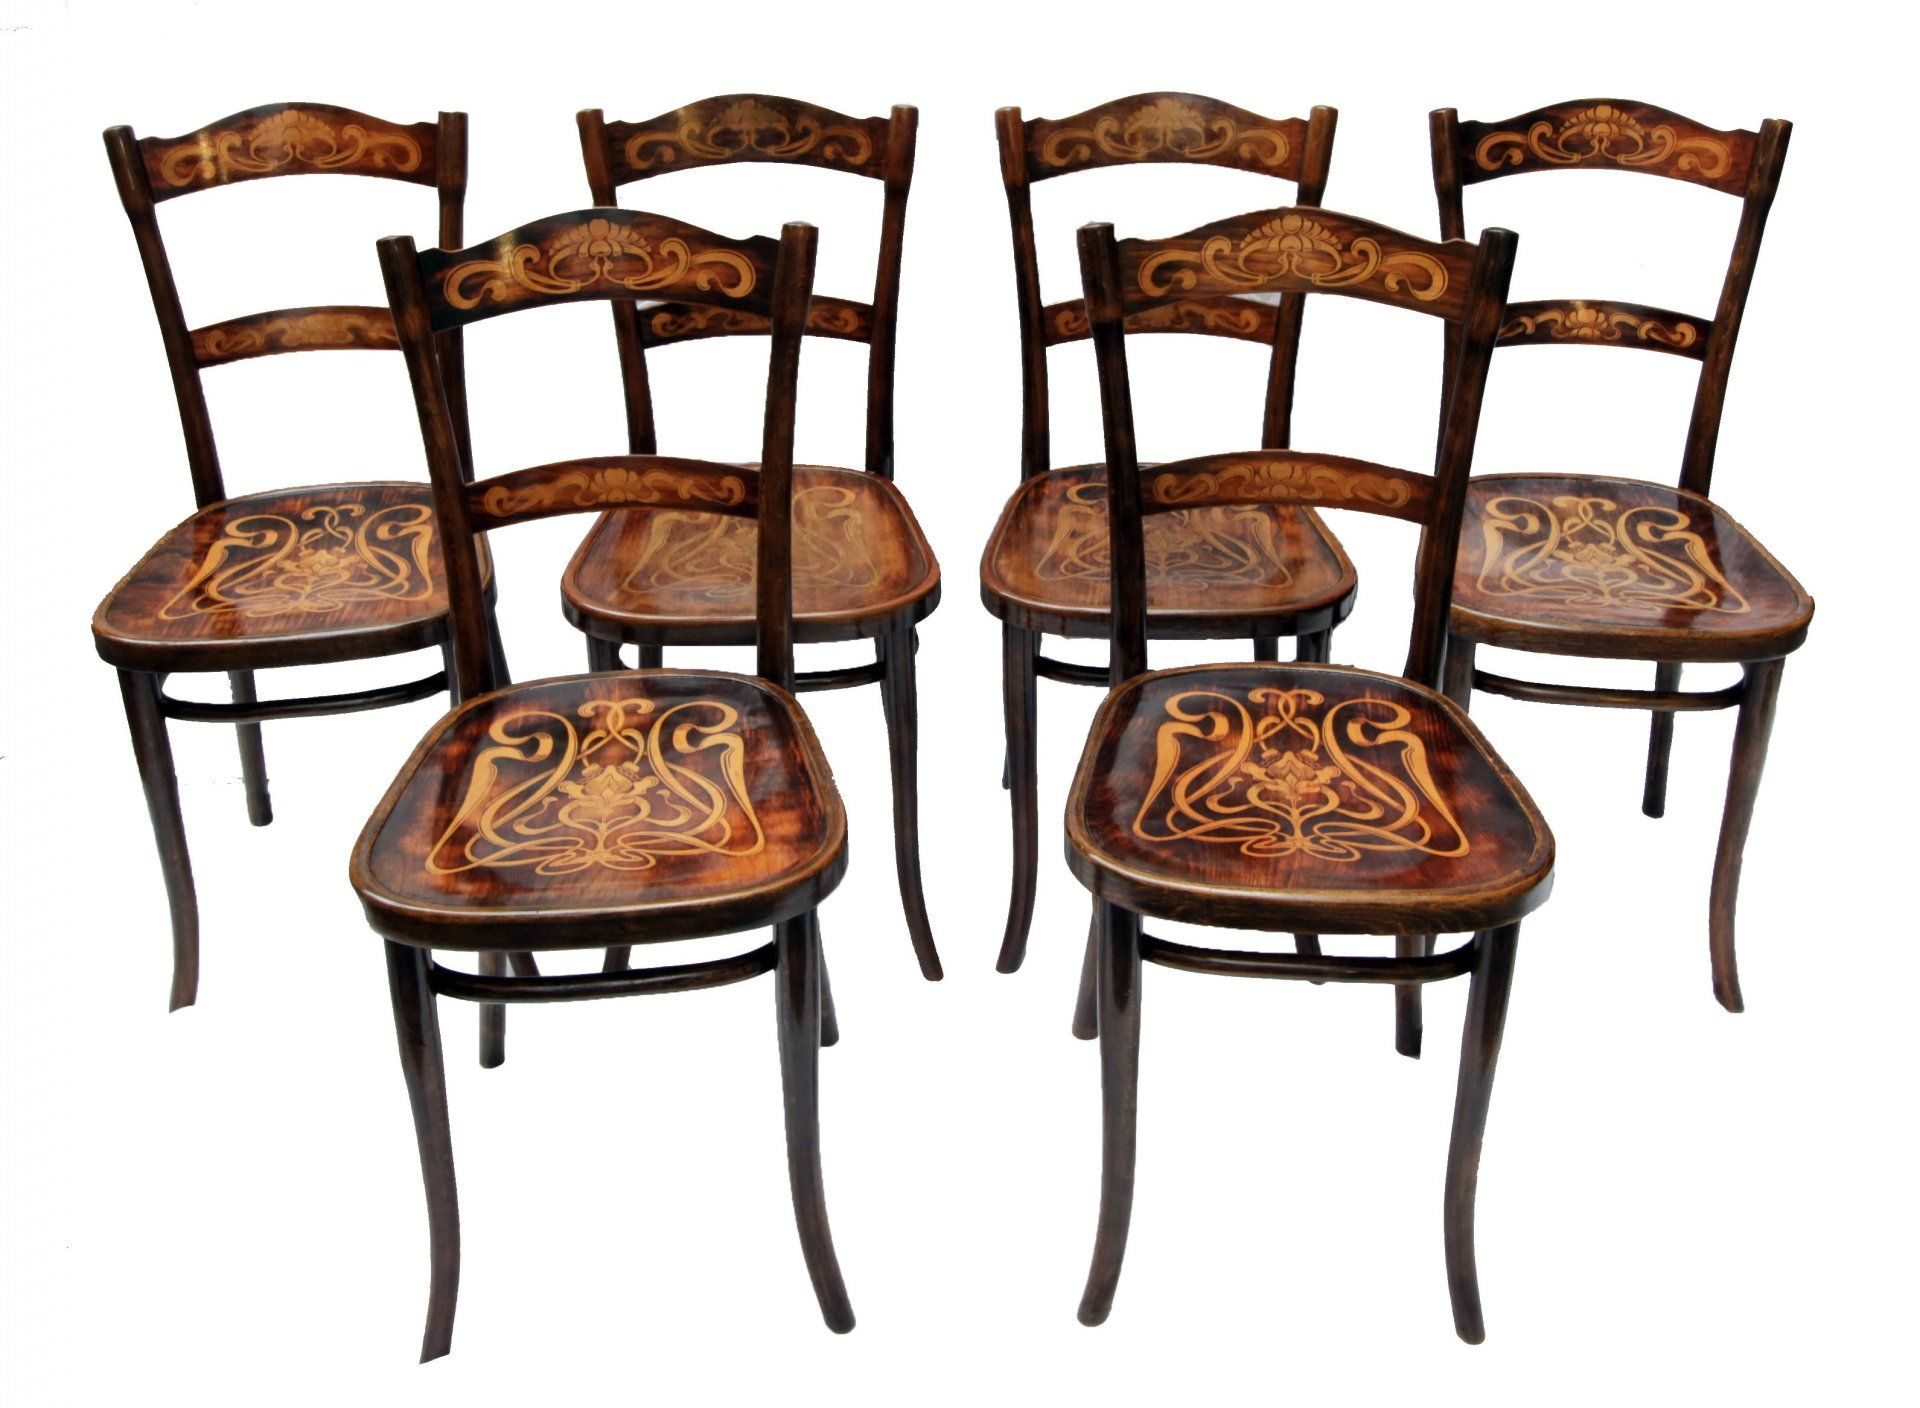 thonet stuhl gruppe 6er satz buche jugendstil antiquit ten antik m bel jugendstil. Black Bedroom Furniture Sets. Home Design Ideas